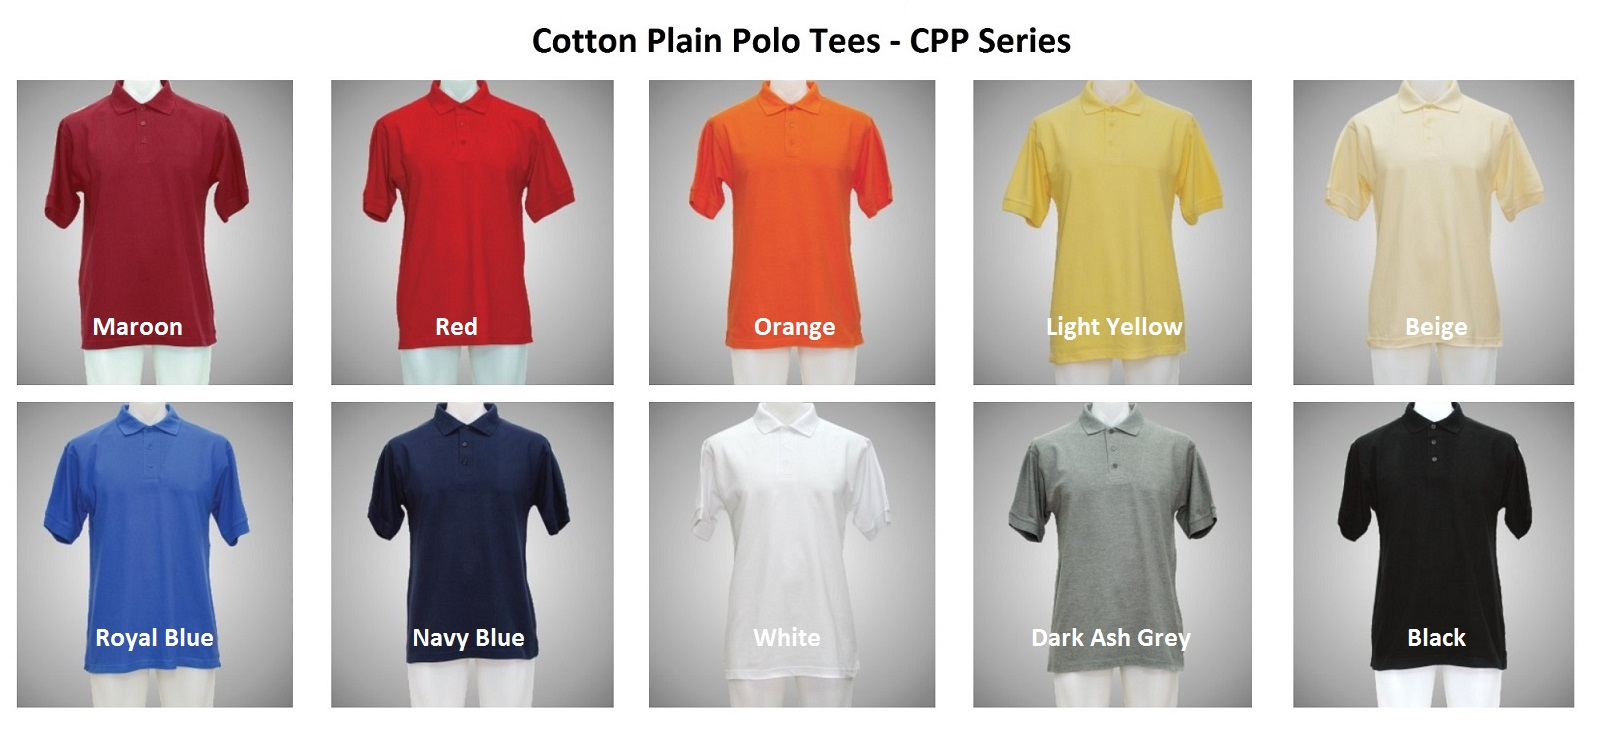 Cotton Plain Polo Tees